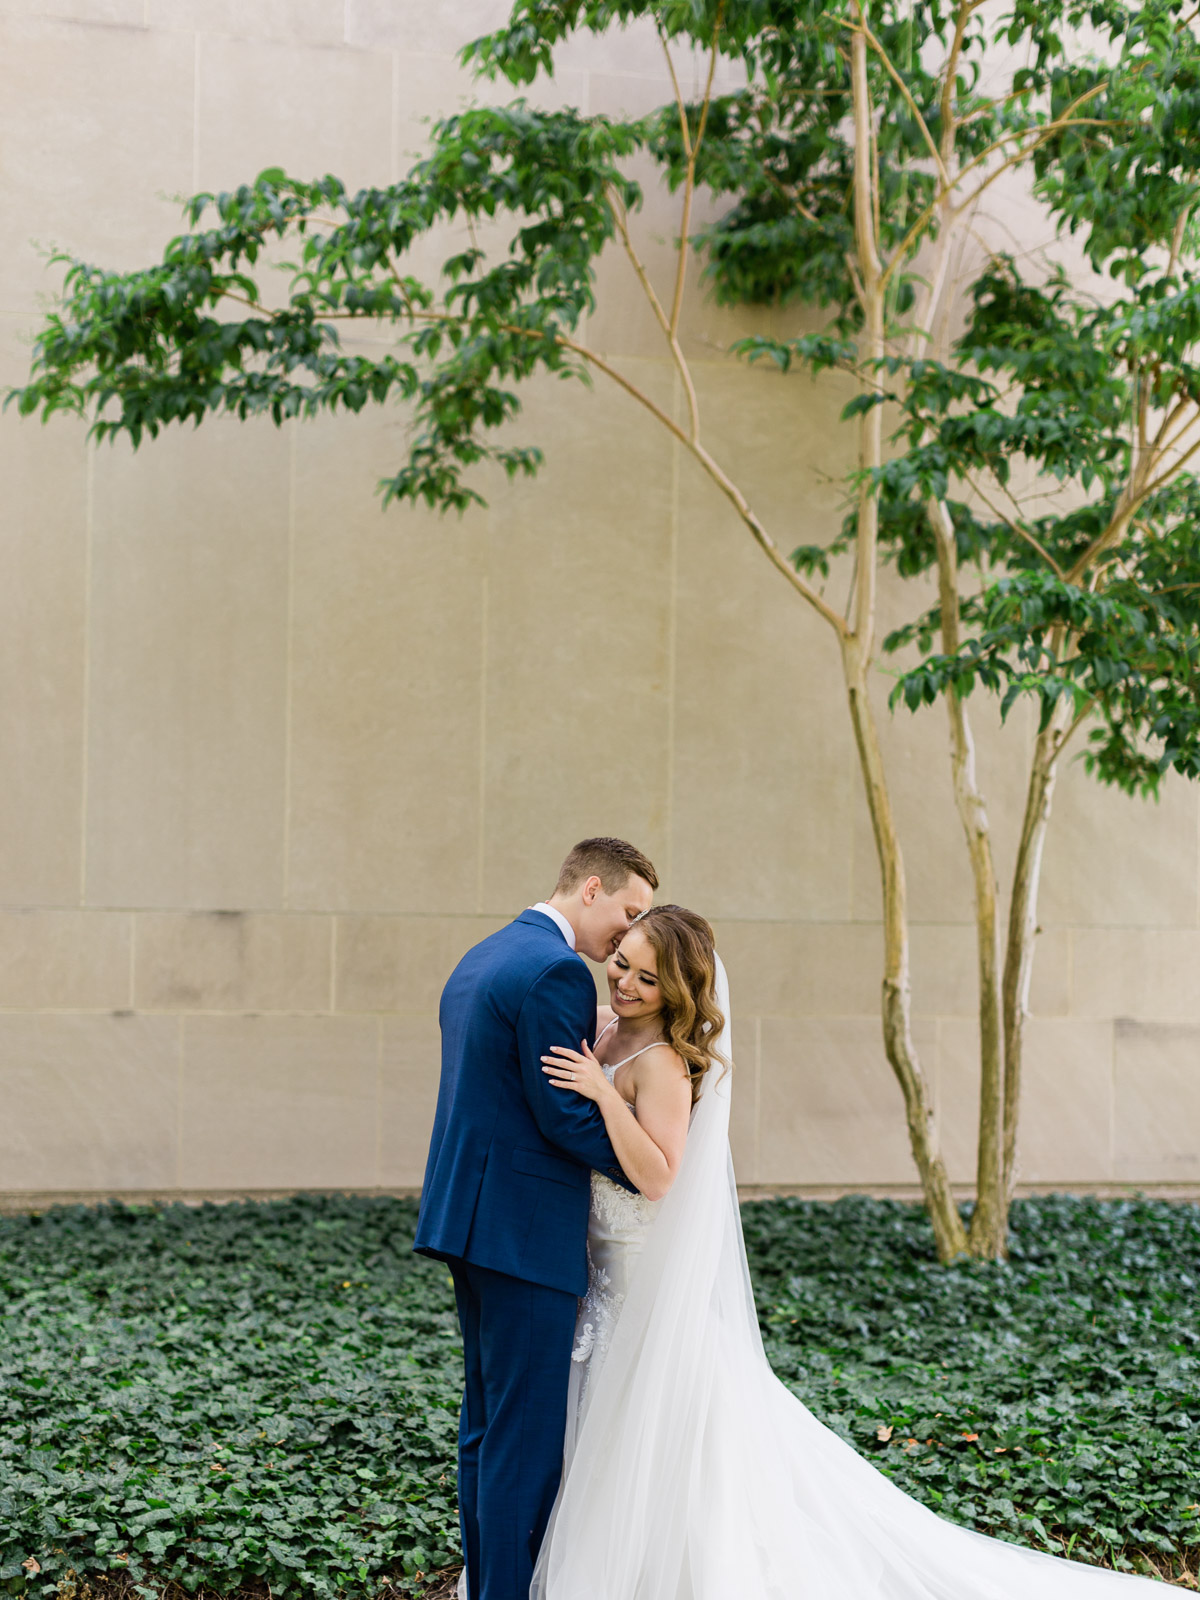 Romantic Summer Wedding at Whitehall in Cleveland-15.jpg